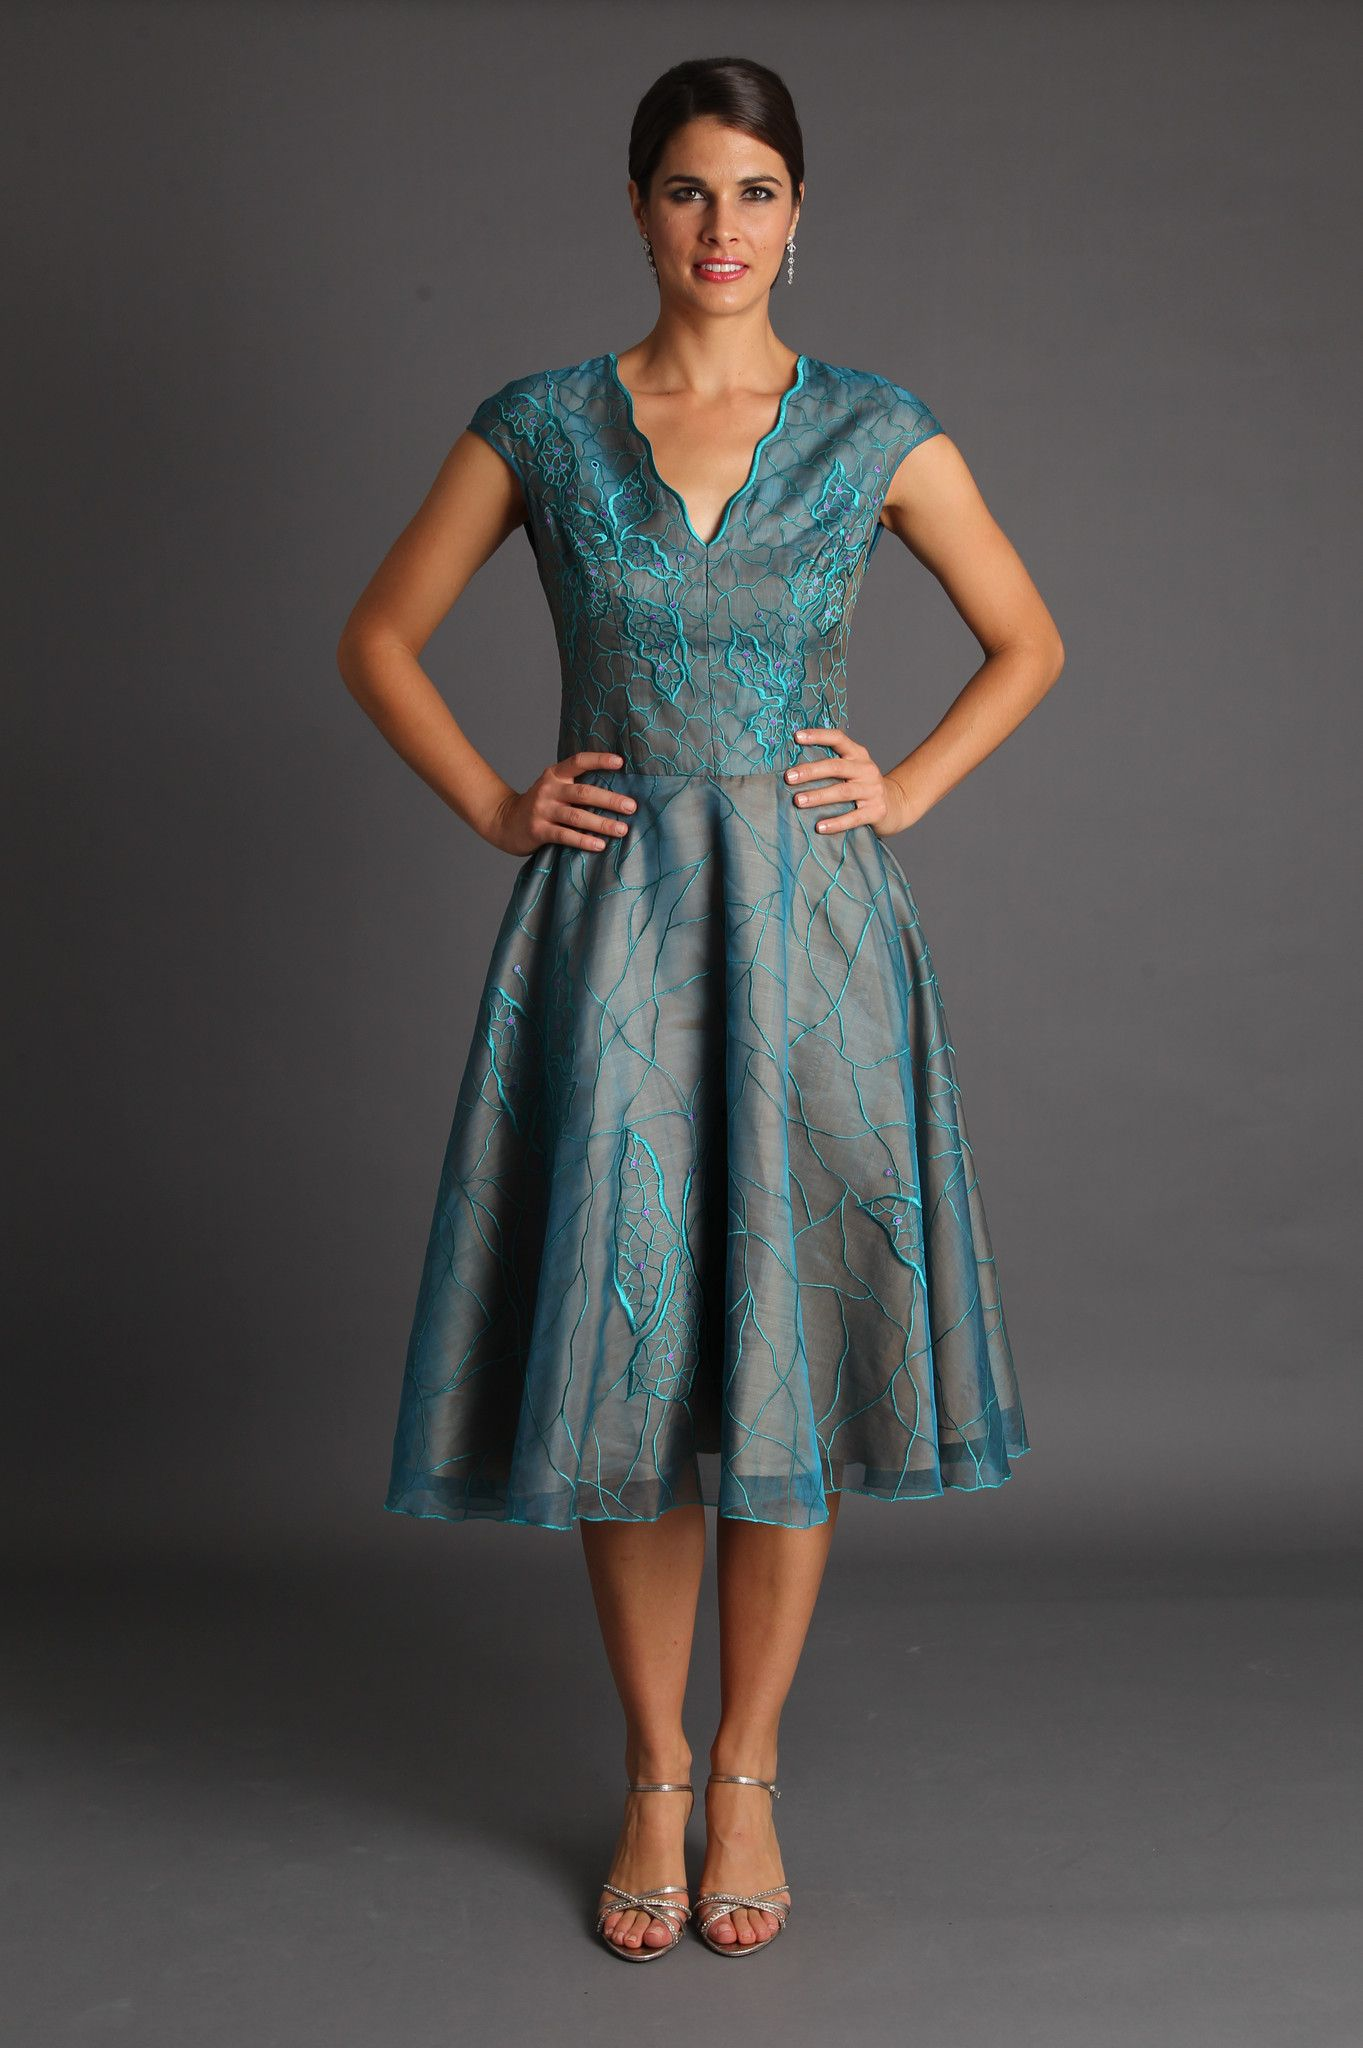 Chrysalide Dress - Turquoise | Hmmmm.... | Pinterest | Formal dress ...